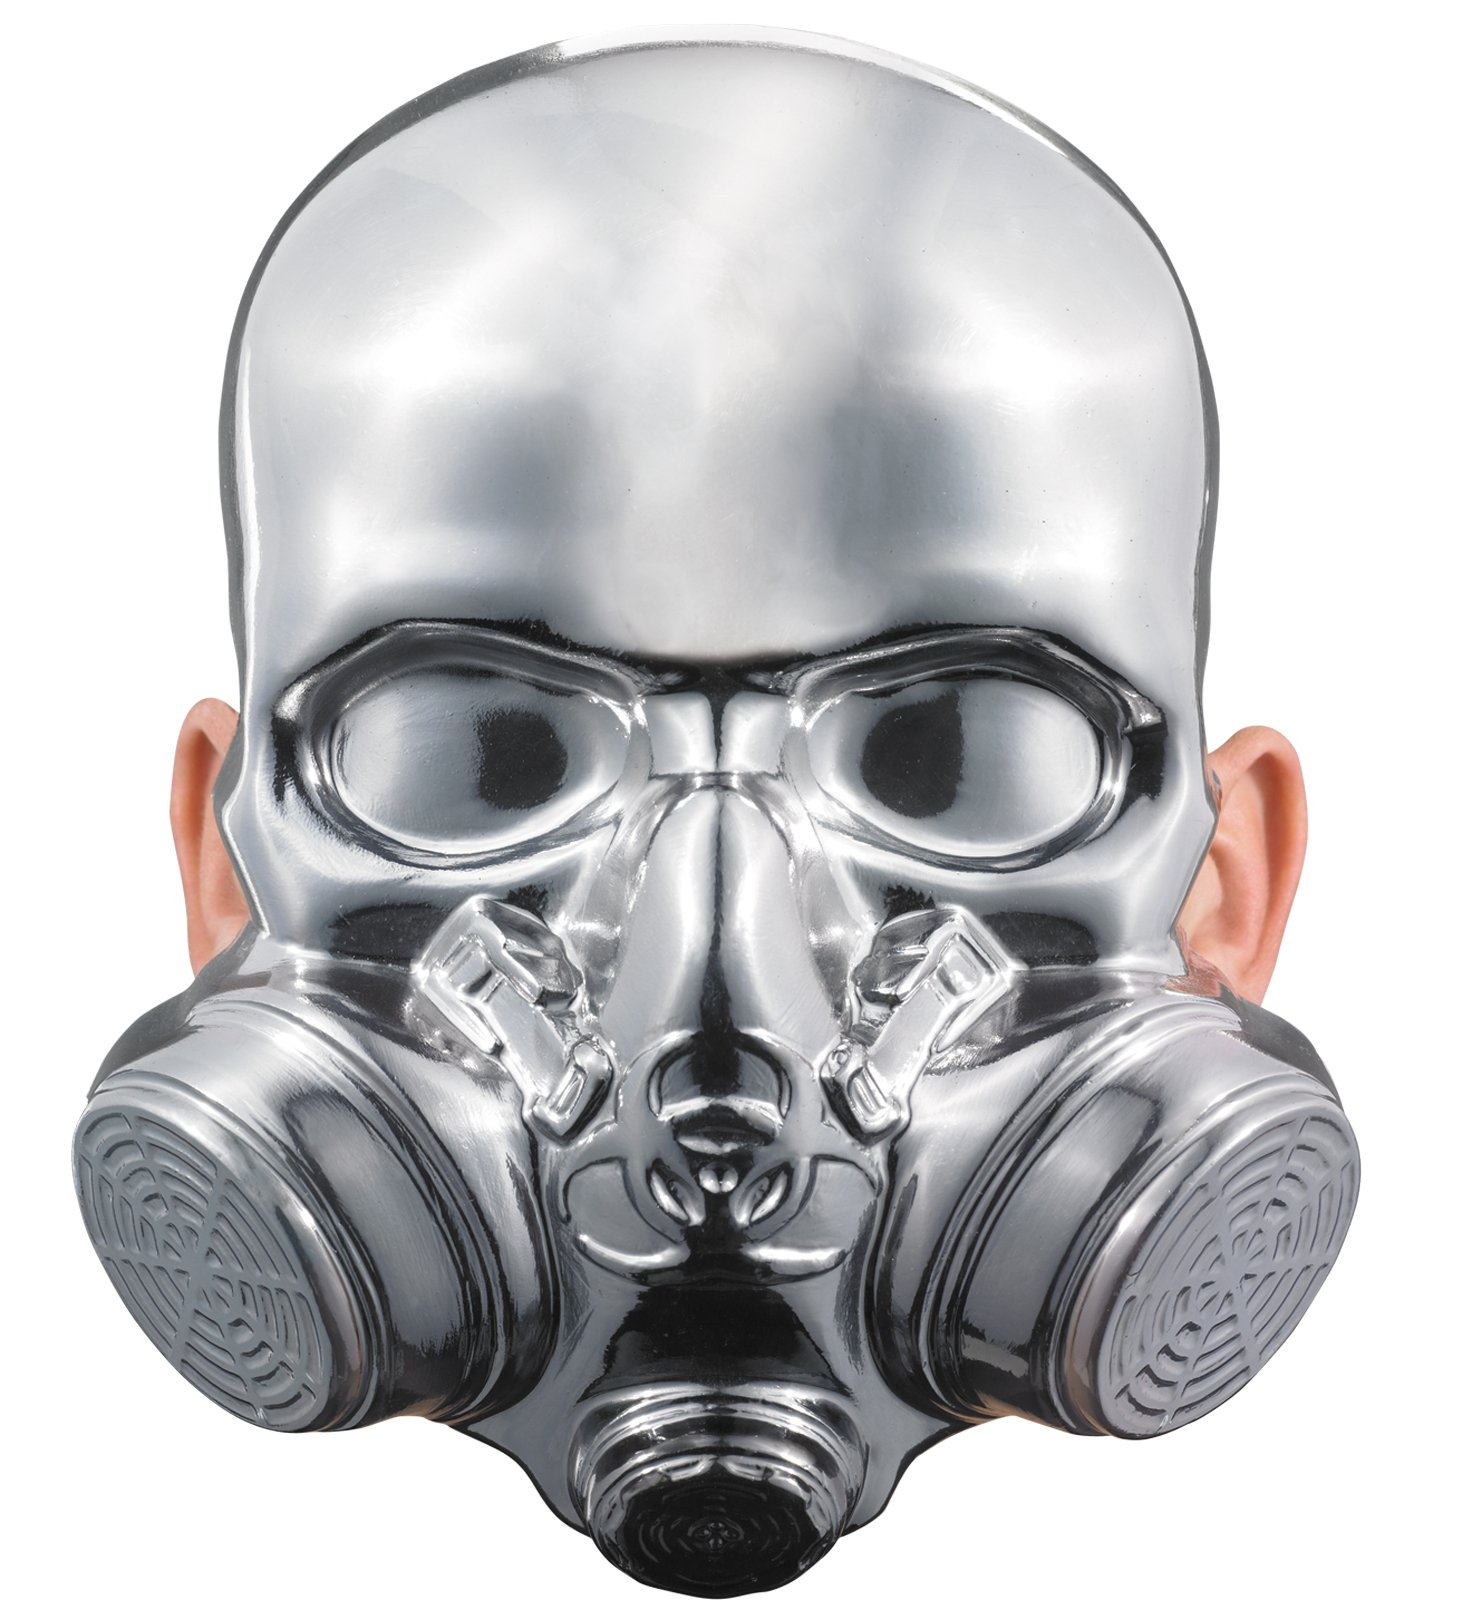 Bio-Hazard Adult Mask